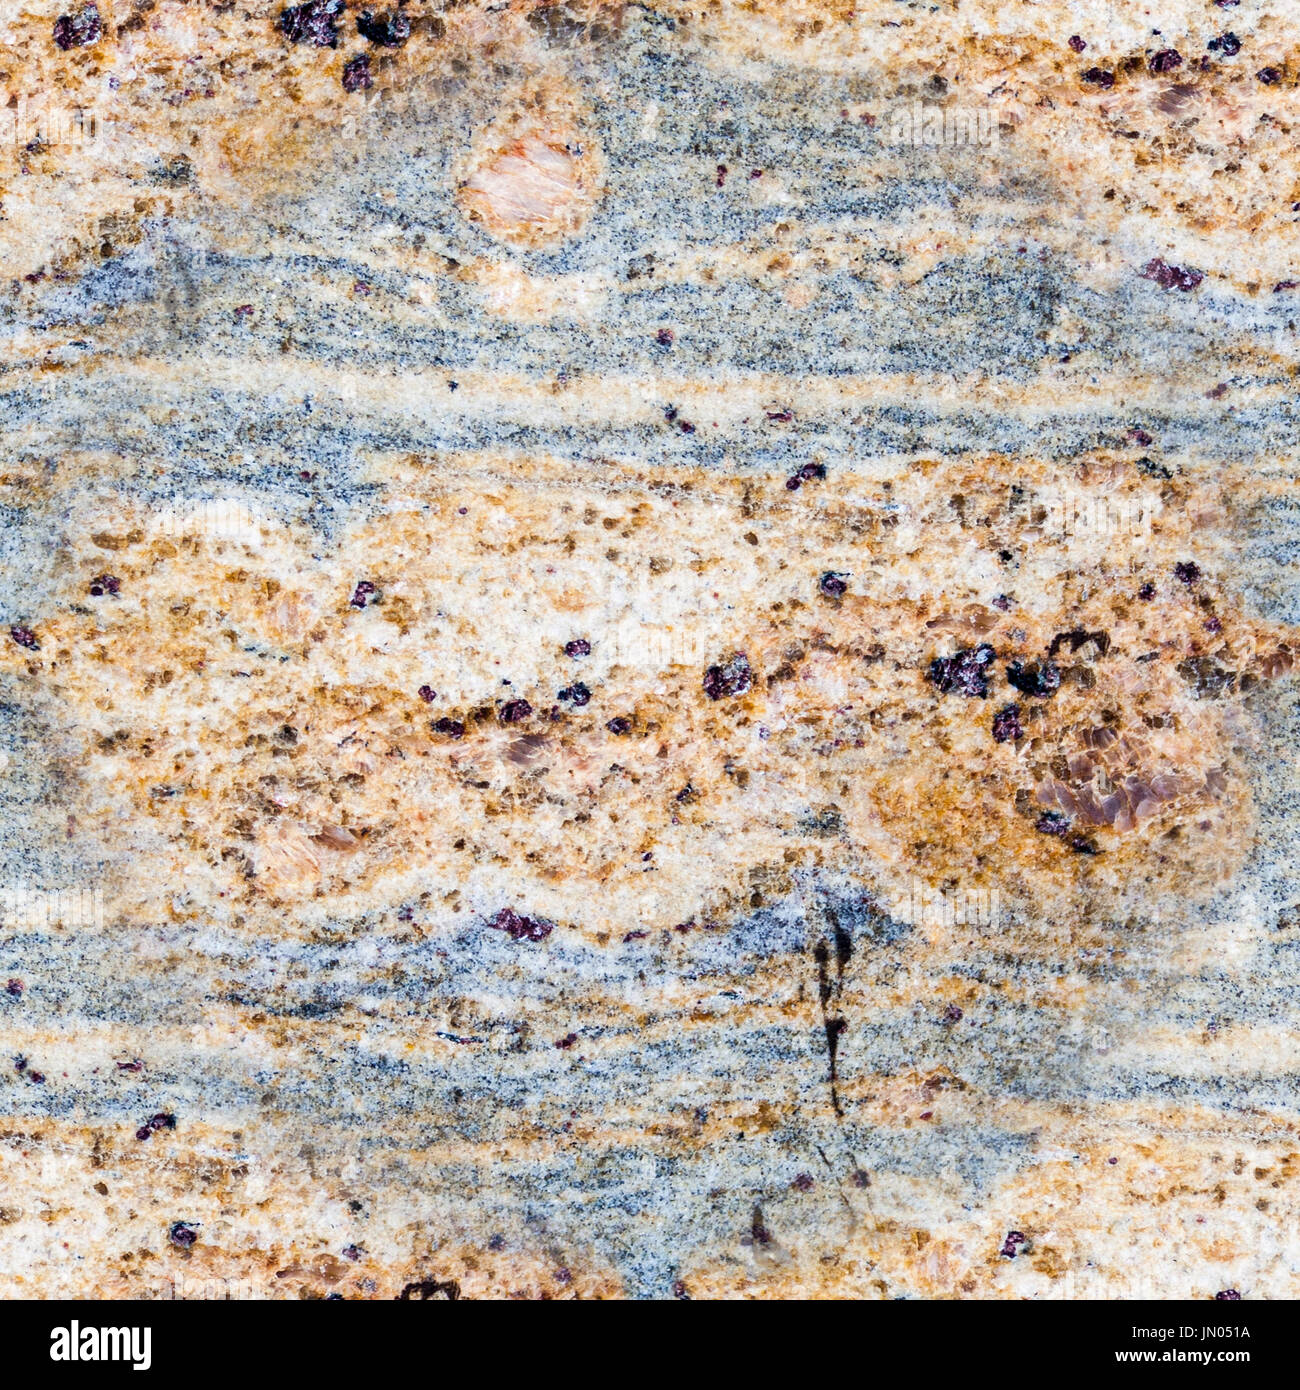 seamless decorative grainy gray-brown marble. texture, background, geology. - Stock Image